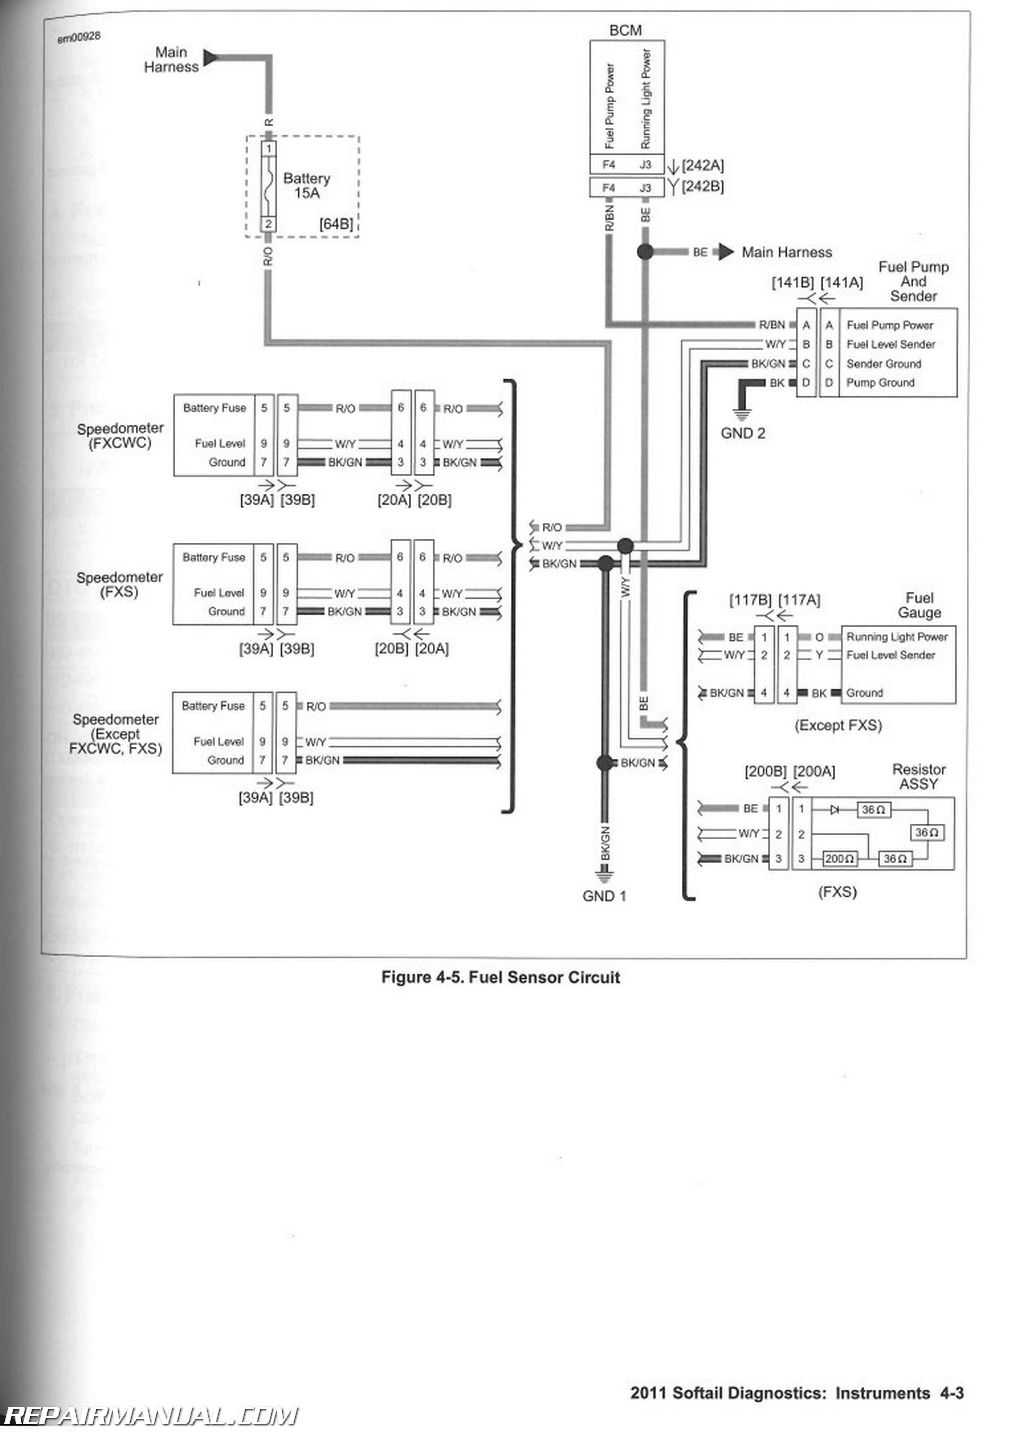 harley davidson girls on harley davidson wiring diagram on softail